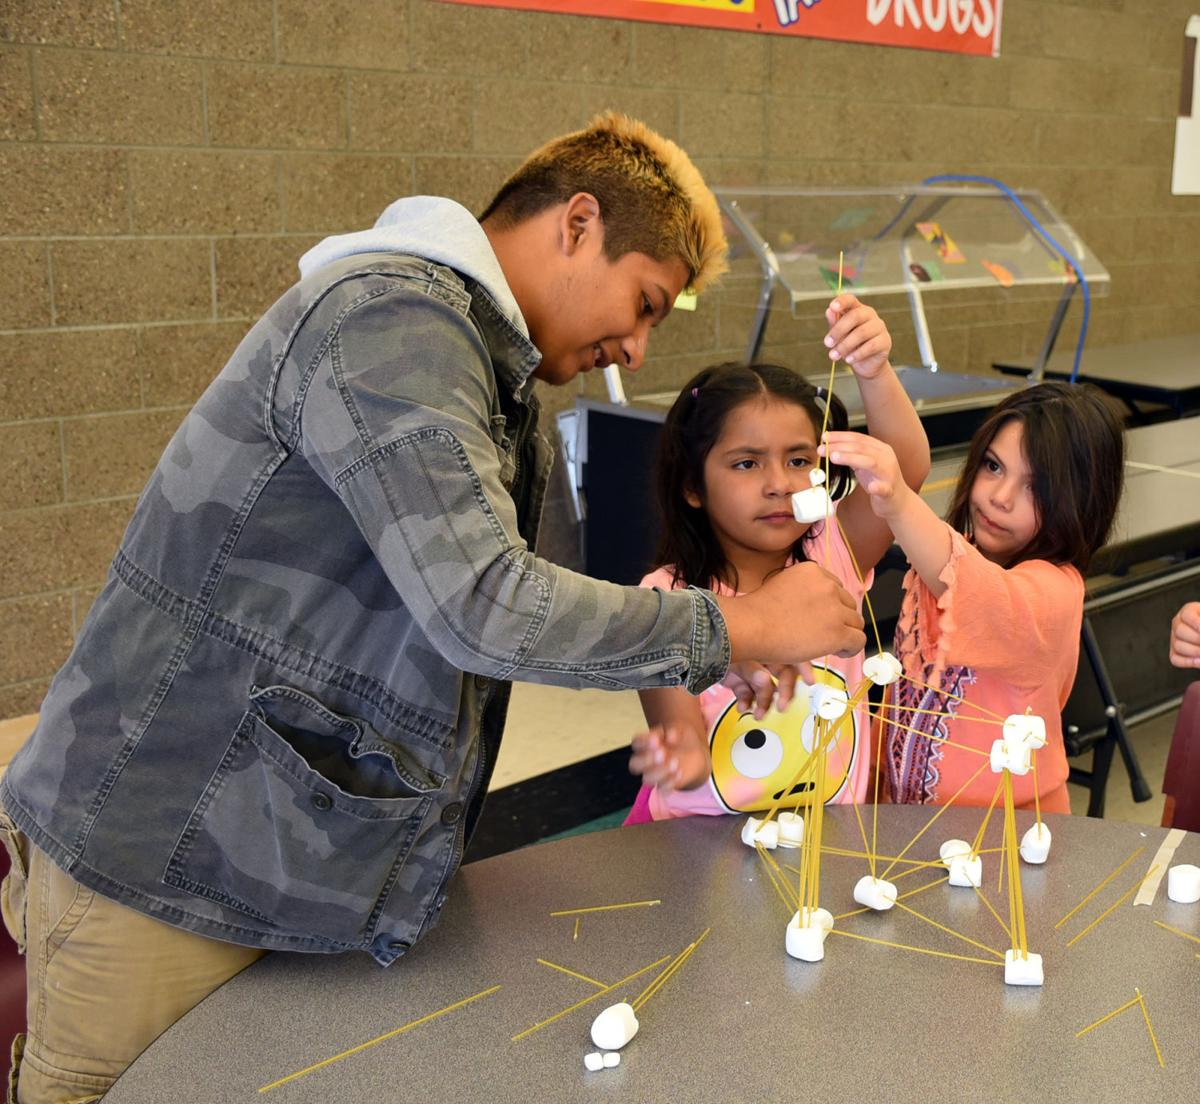 Marshmallow towers prove to be a challenge with STEM activity | Local News  Stories | wahpetondailynews.com